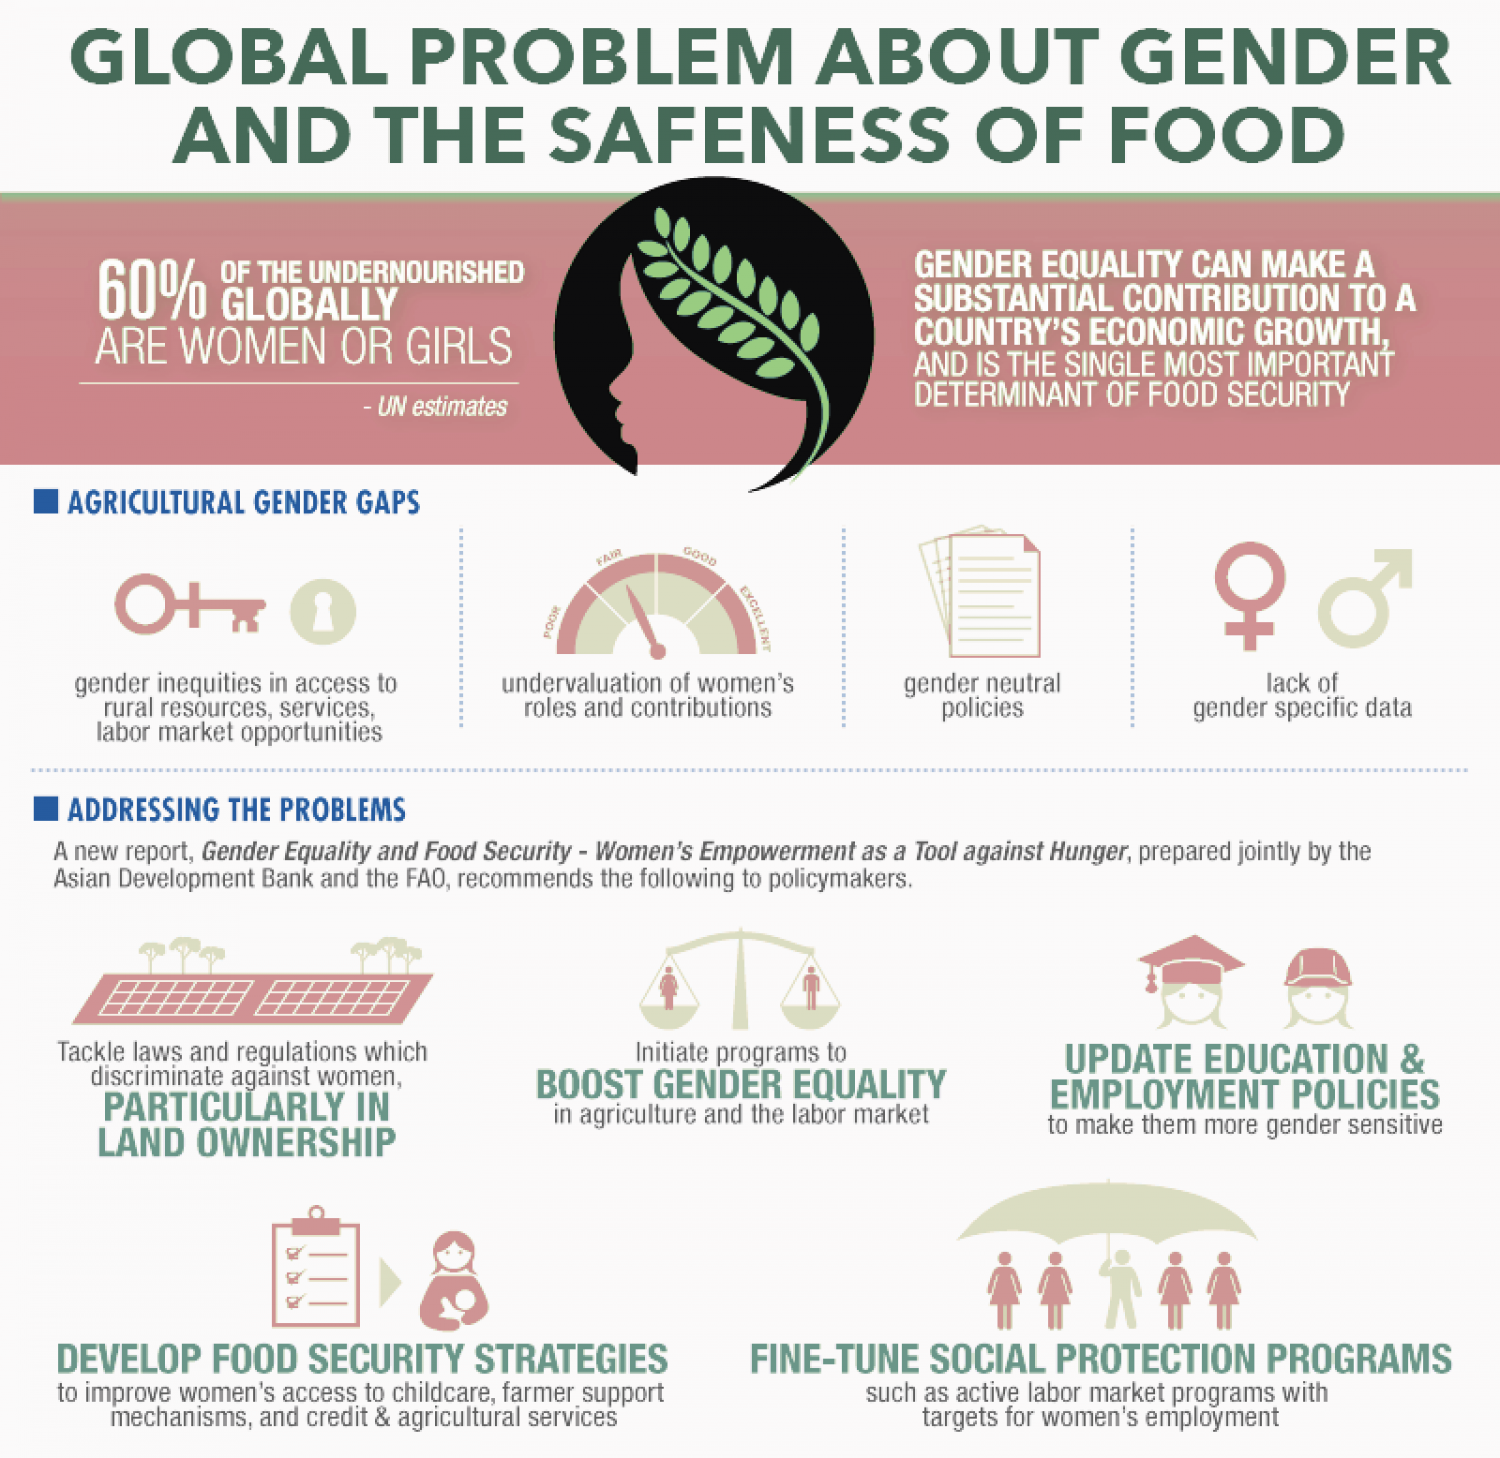 GLOBAL PROBLEM ABOUT GENDER AND THE SAFENESS OF FOOD Infographic